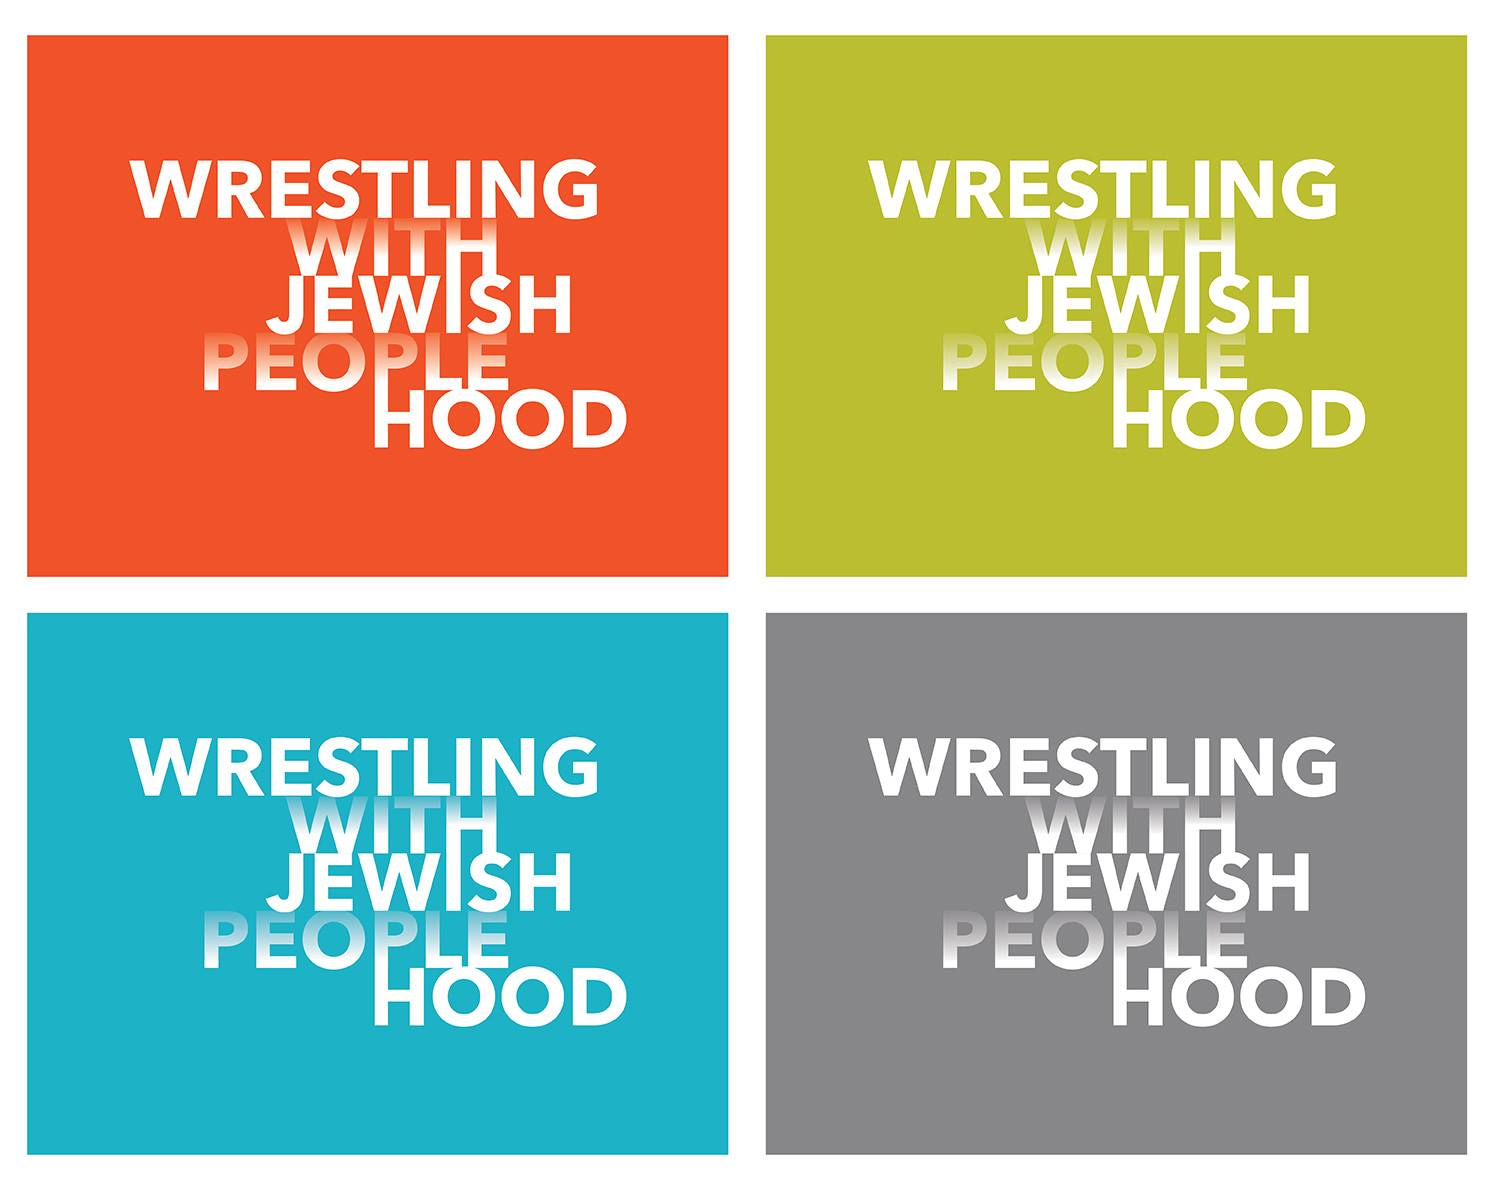 Image Credit: Wrestling with Jewish Peoplehood Conference